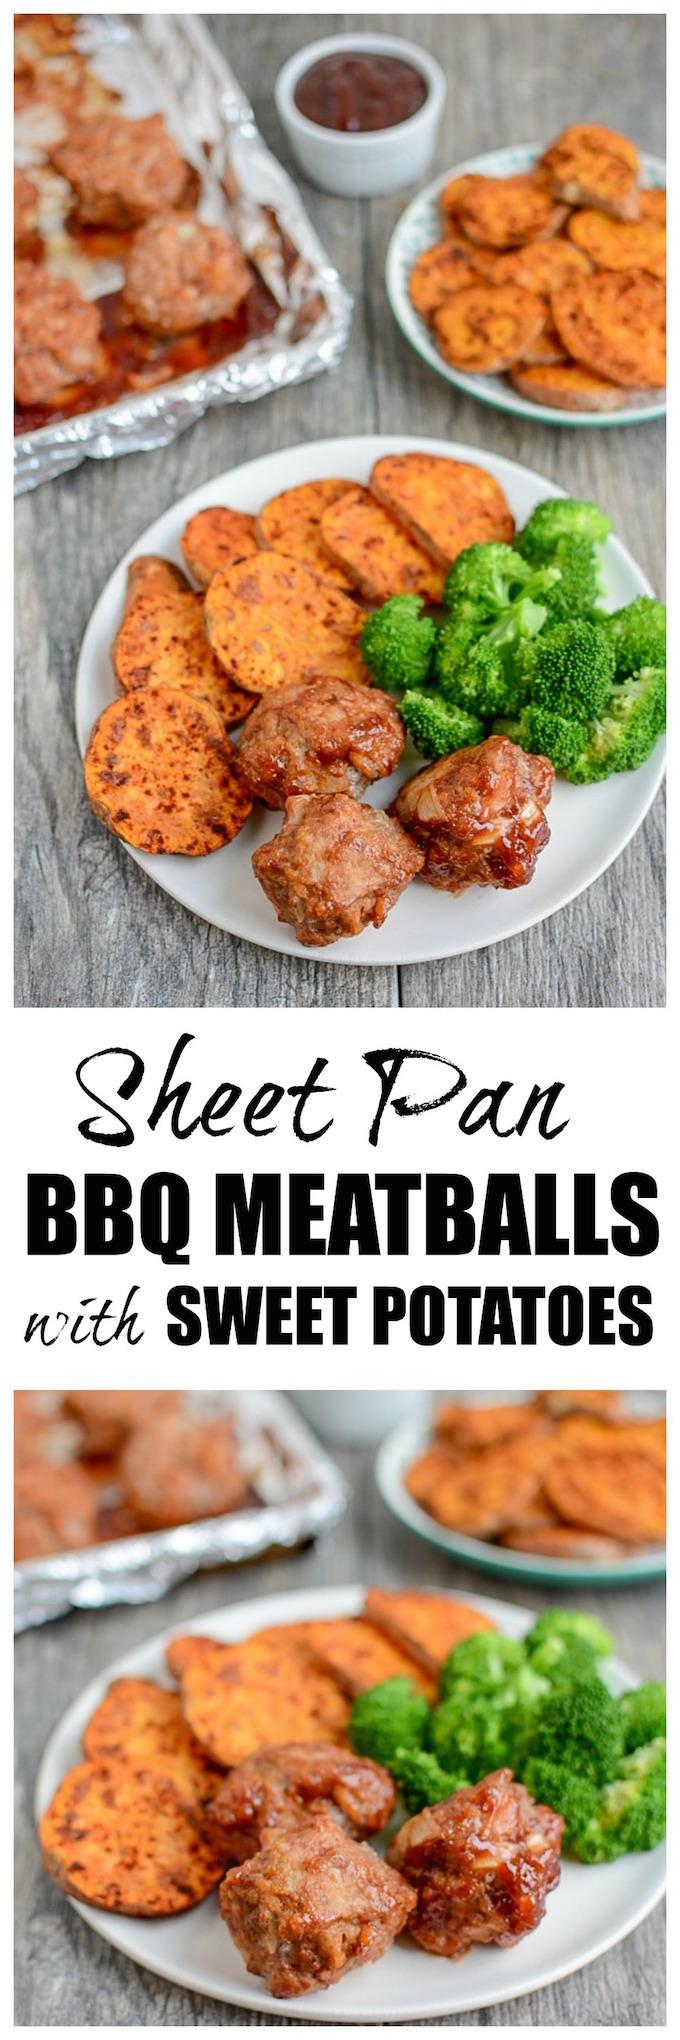 Make these Sheet Pan BBQ Meatballs with Sweet Potatoes recipe for a quick and easy weeknight dinner that the whole family will love! Plus the leftovers make the perfect healthy lunch option.